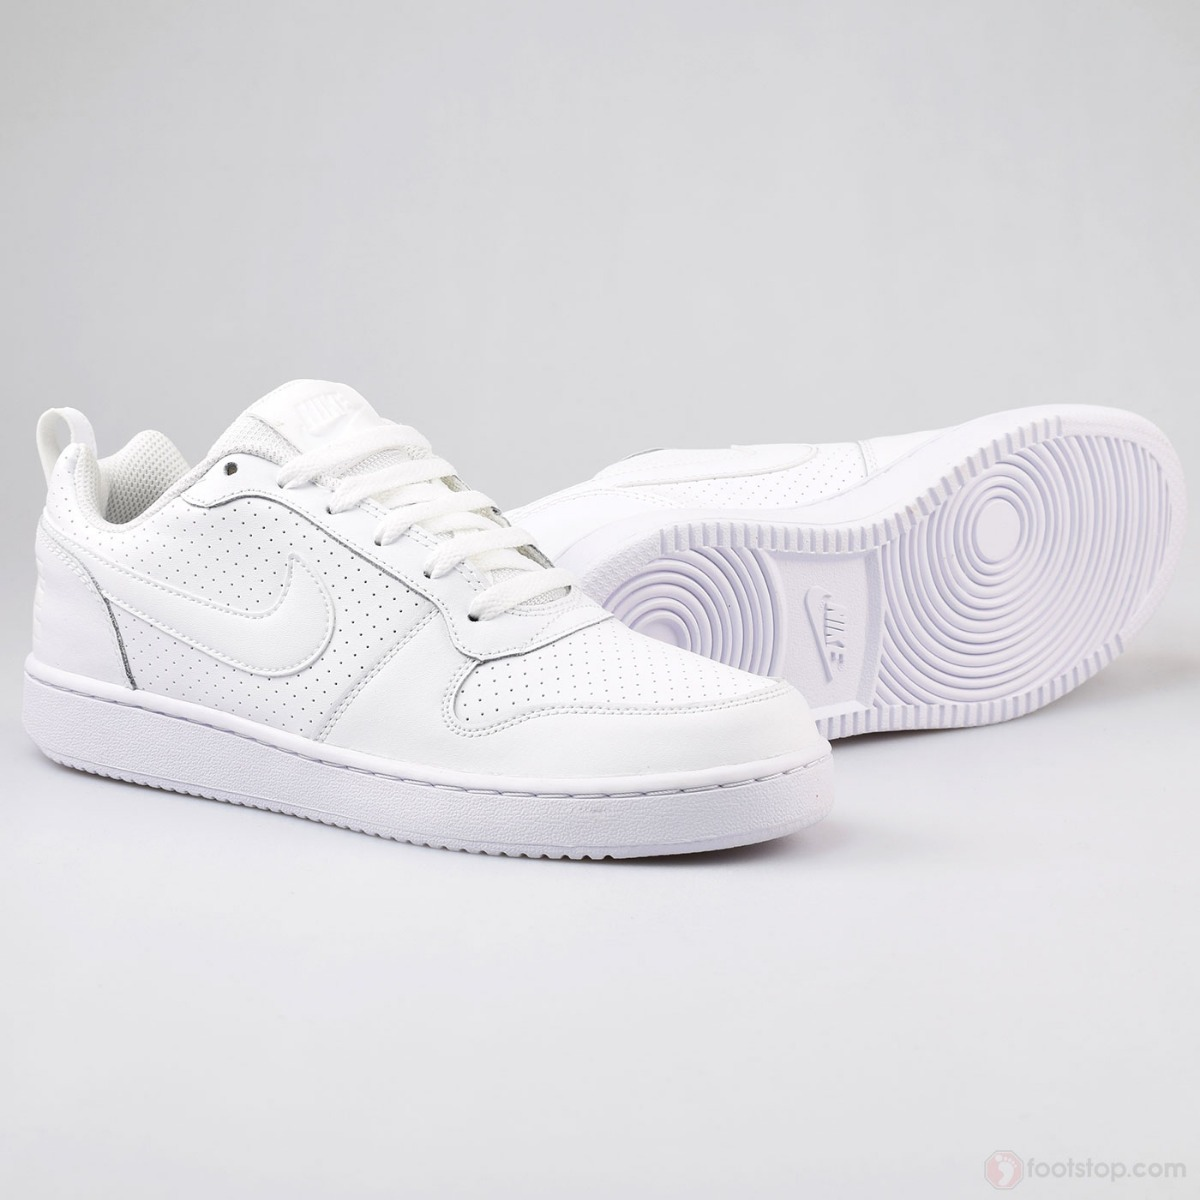 0b95d5a531d tenis nike court borough low 844905 110 blanco. Cargando zoom.